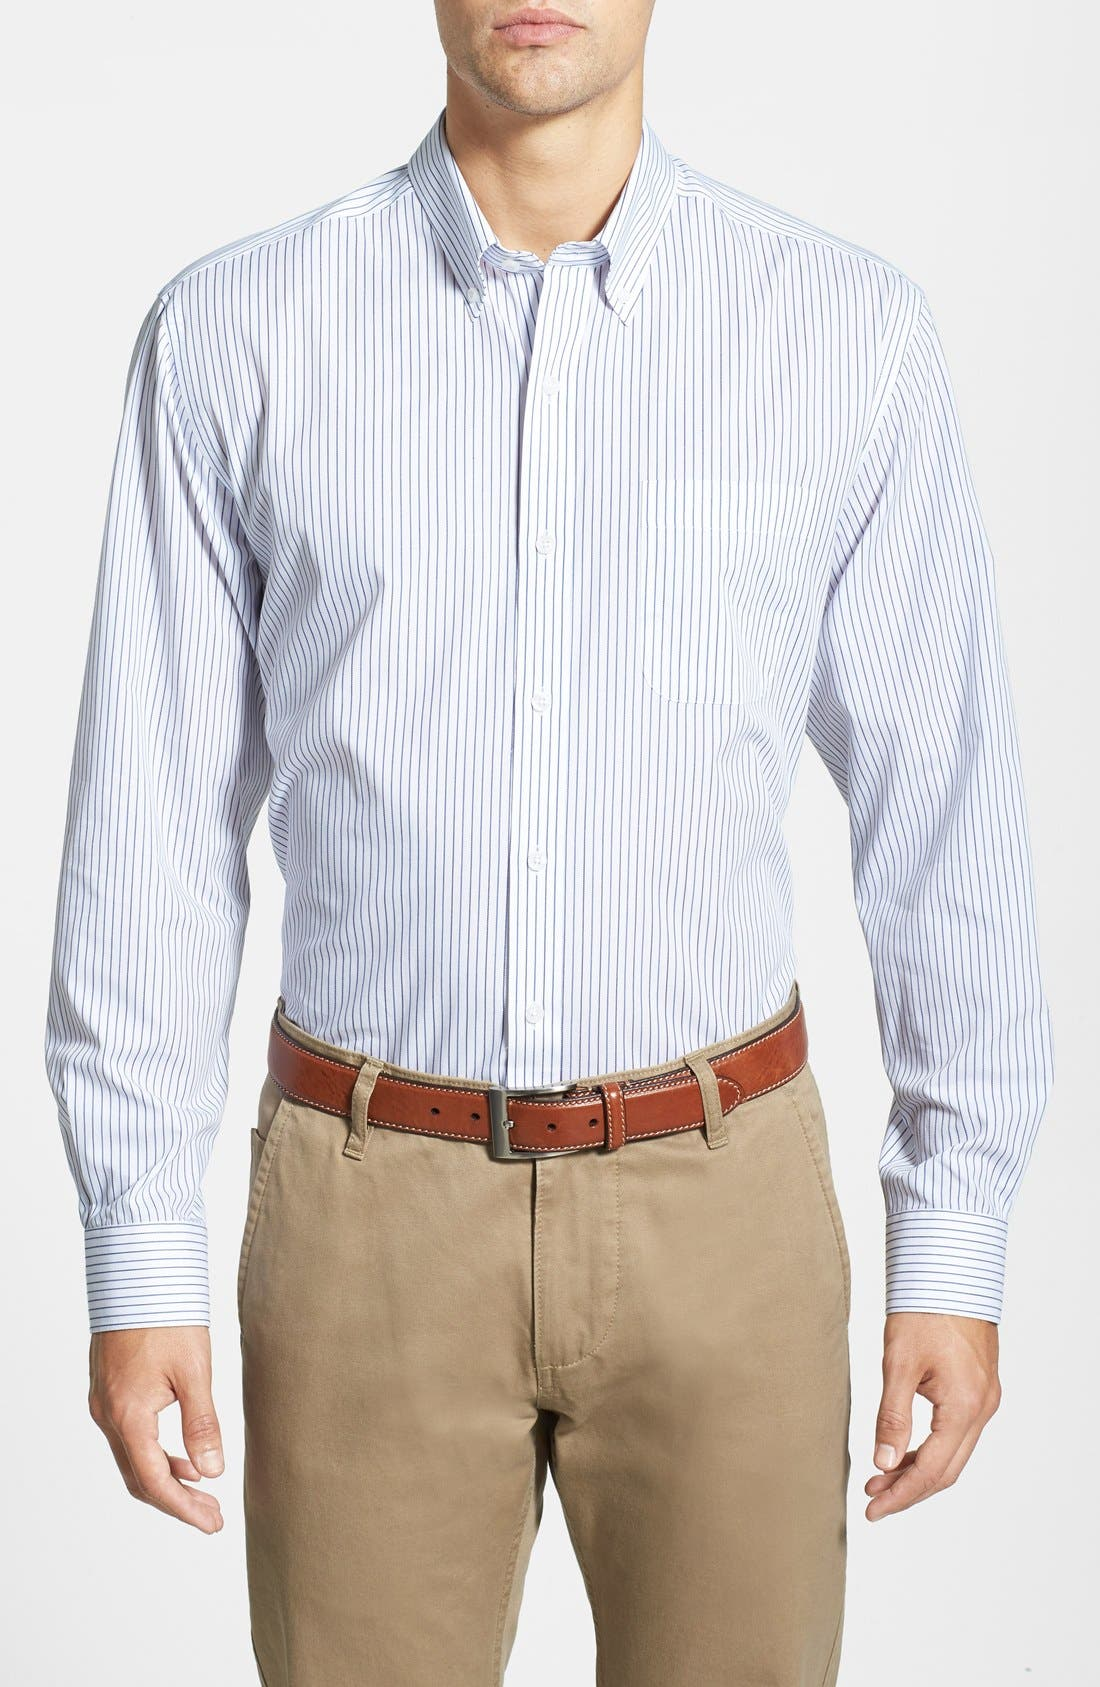 Main Image - Cutter & Buck 'Epic Easy Care' Classic Fit Vertical Pinstripe Wrinkle Resistant Sport Shirt